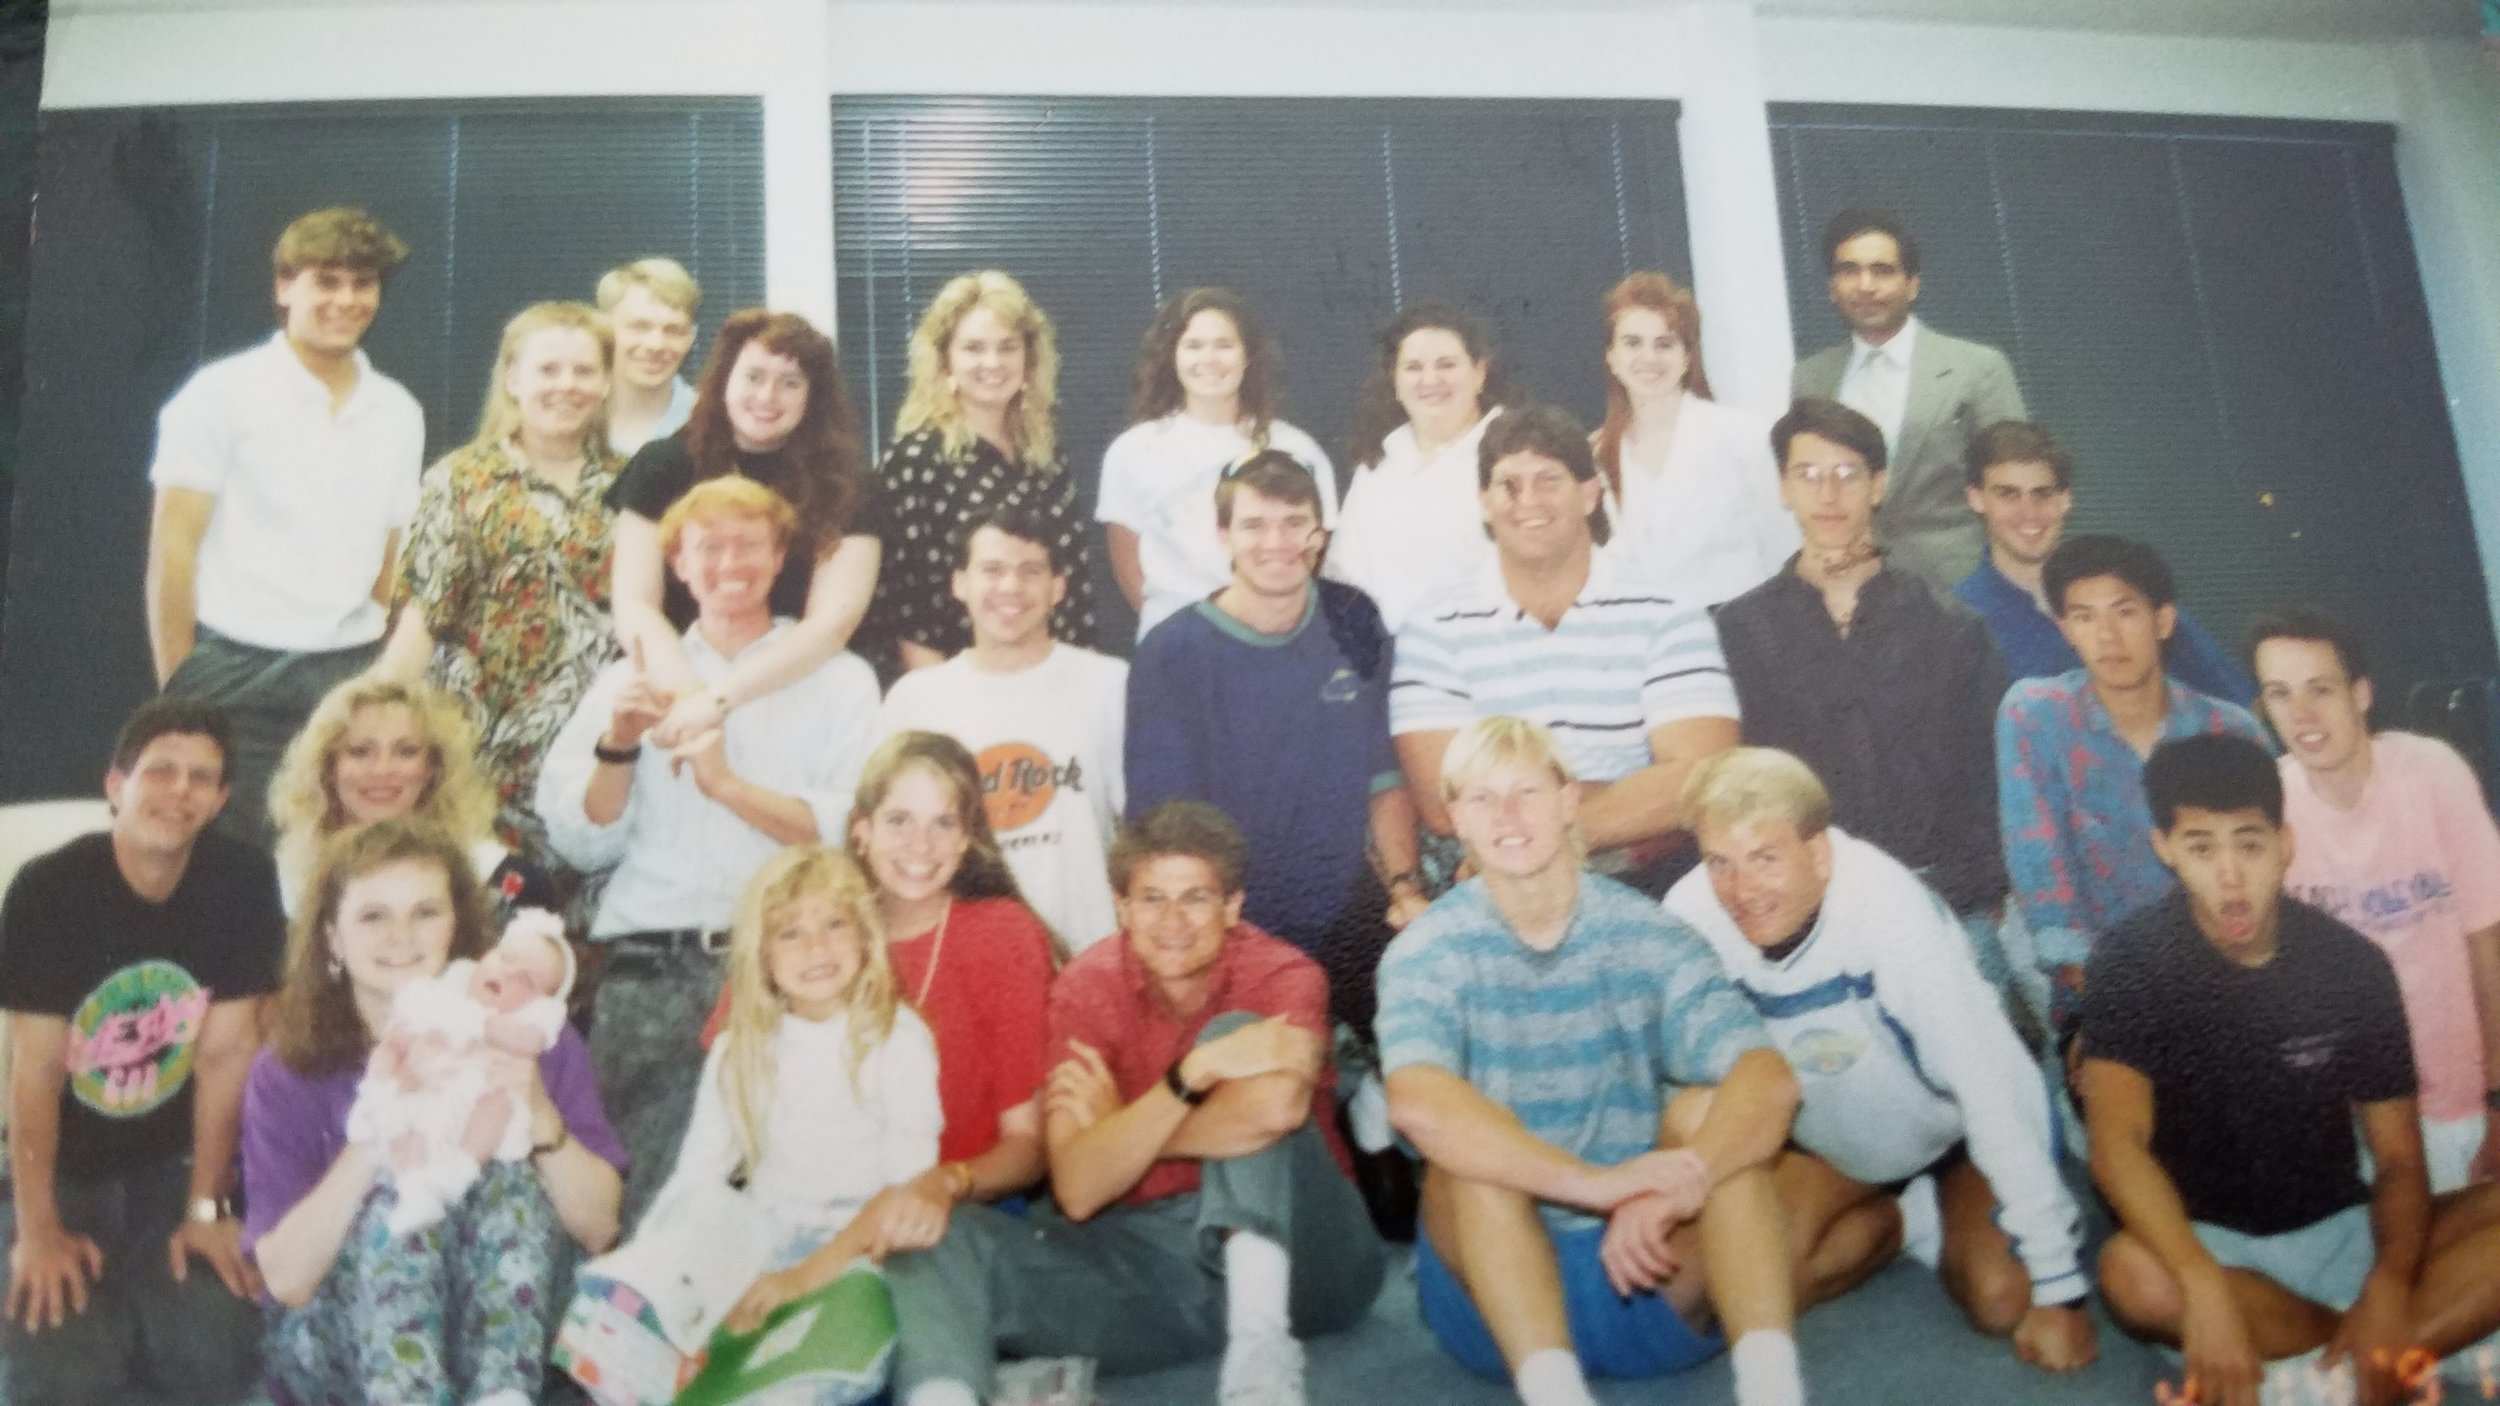 Pastor Frank (front row, in red) next to his future wife Cynda (also in red) at their Mission Hills church.